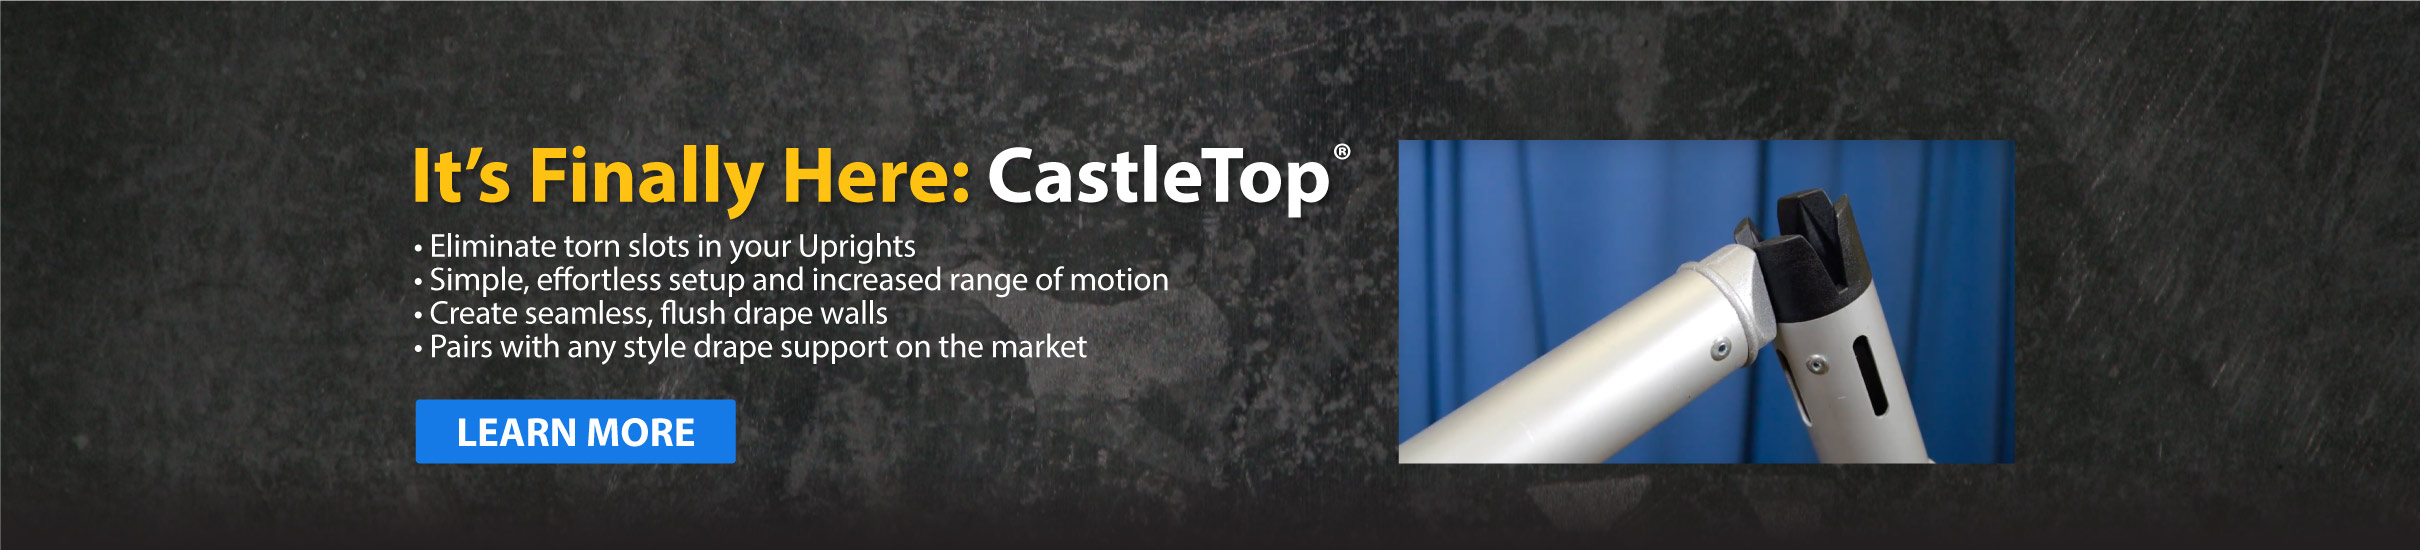 It's finally here: CastleTop Learn More button